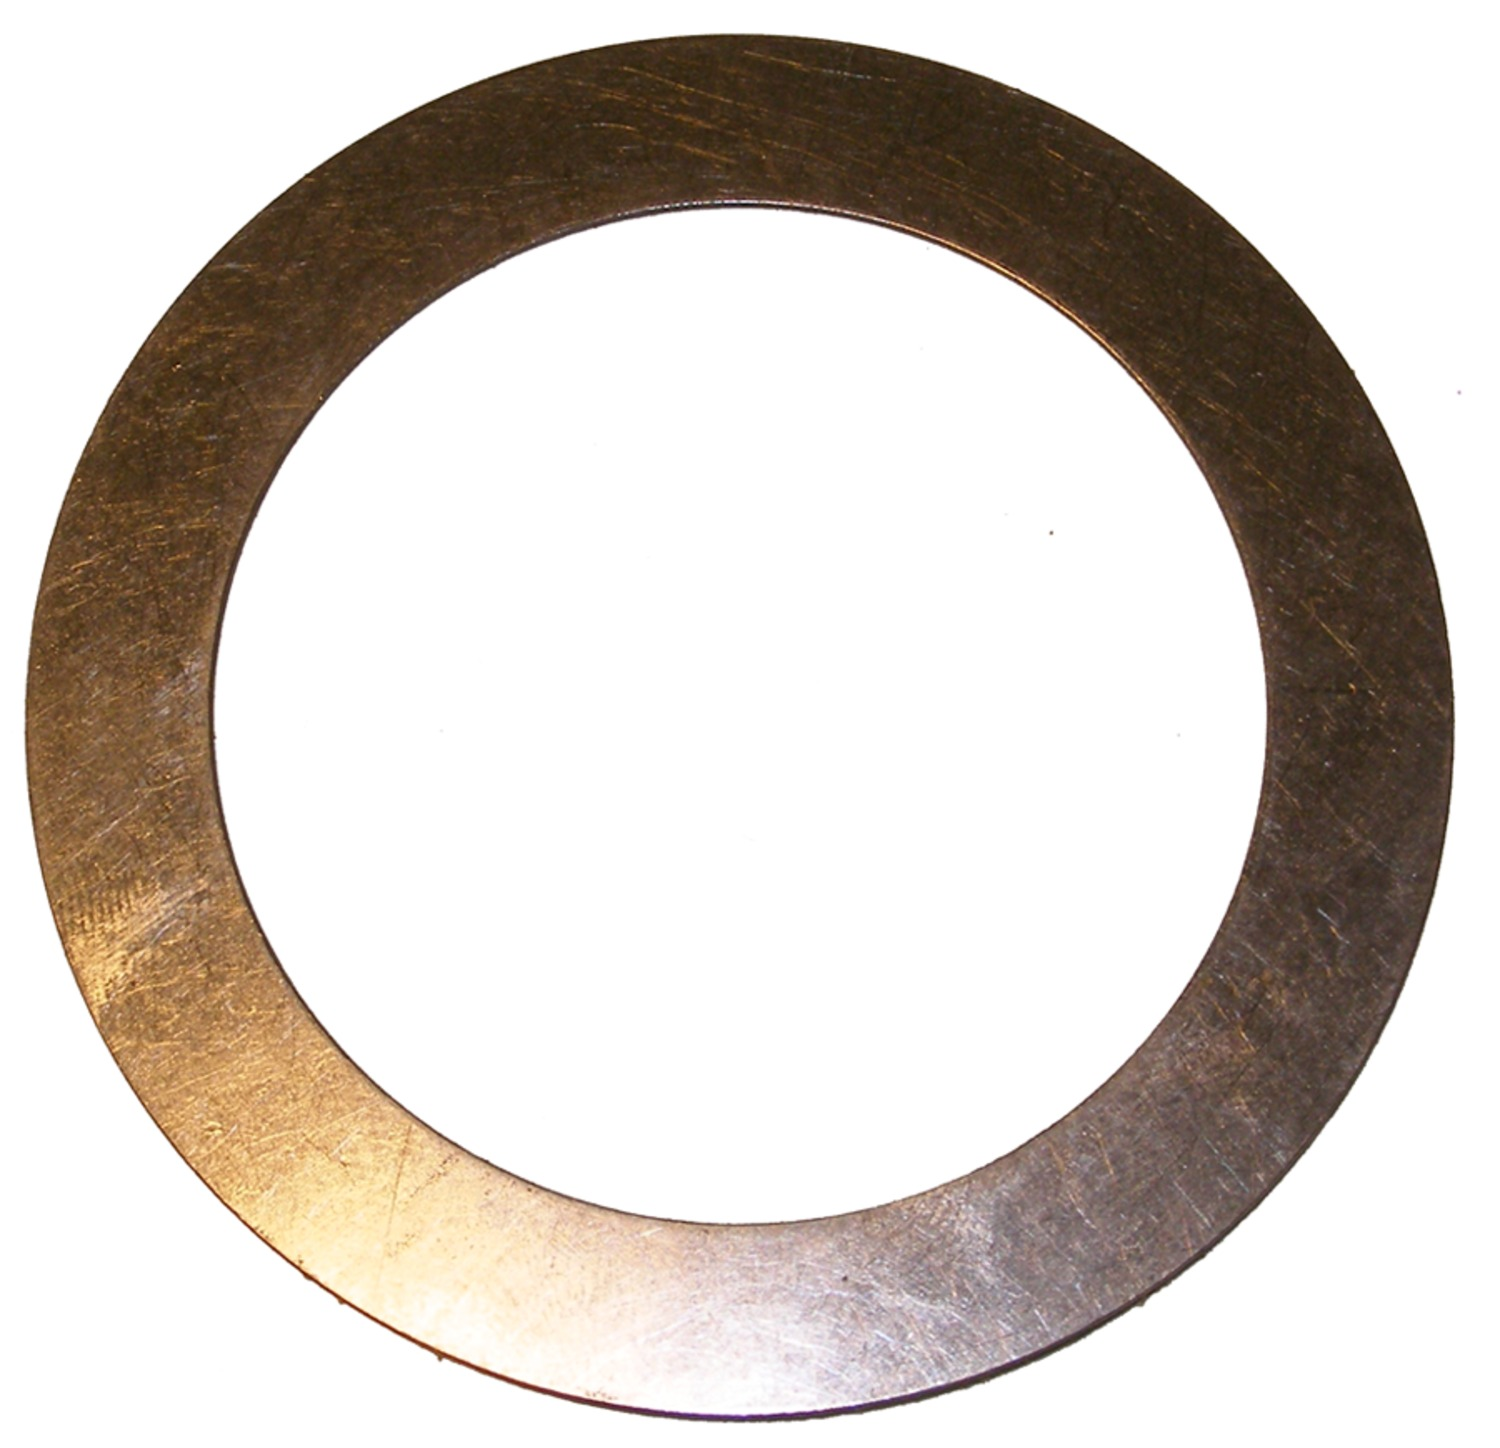 9-203 Cloyes Performance Camshaft Thrust Washer For Use With Big